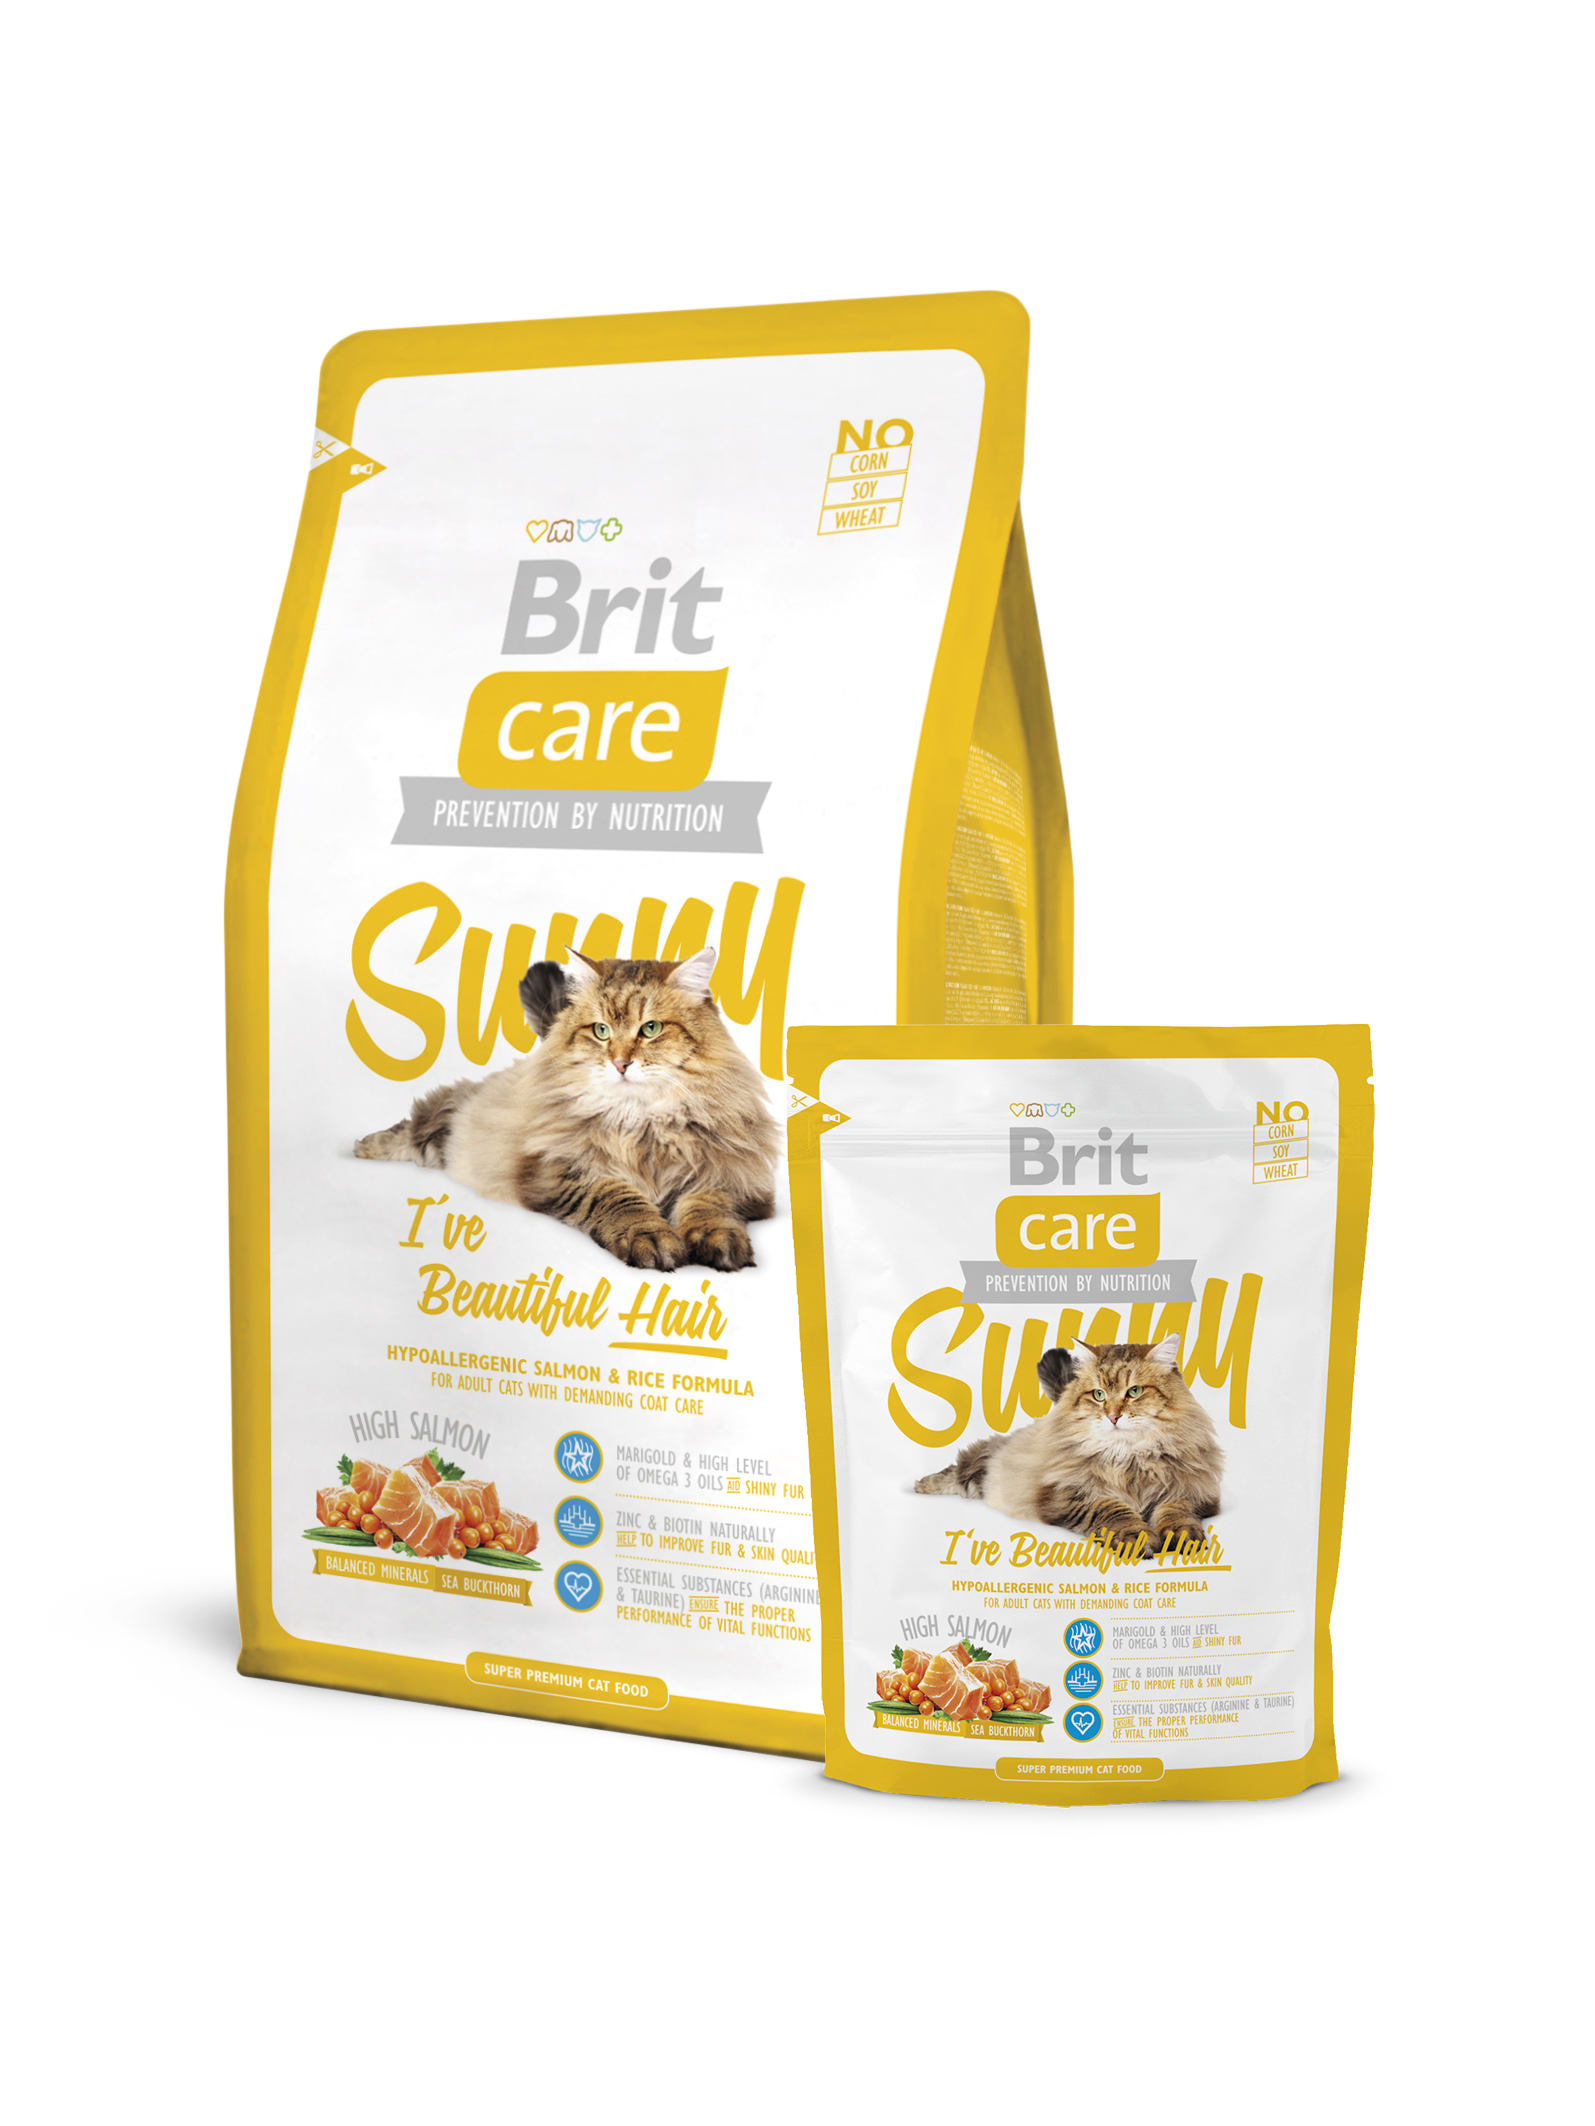 Brit Care Cat Food Sunny I've Beautiful Hair 400 G - Pet Food - Pet Store - Pet supplies